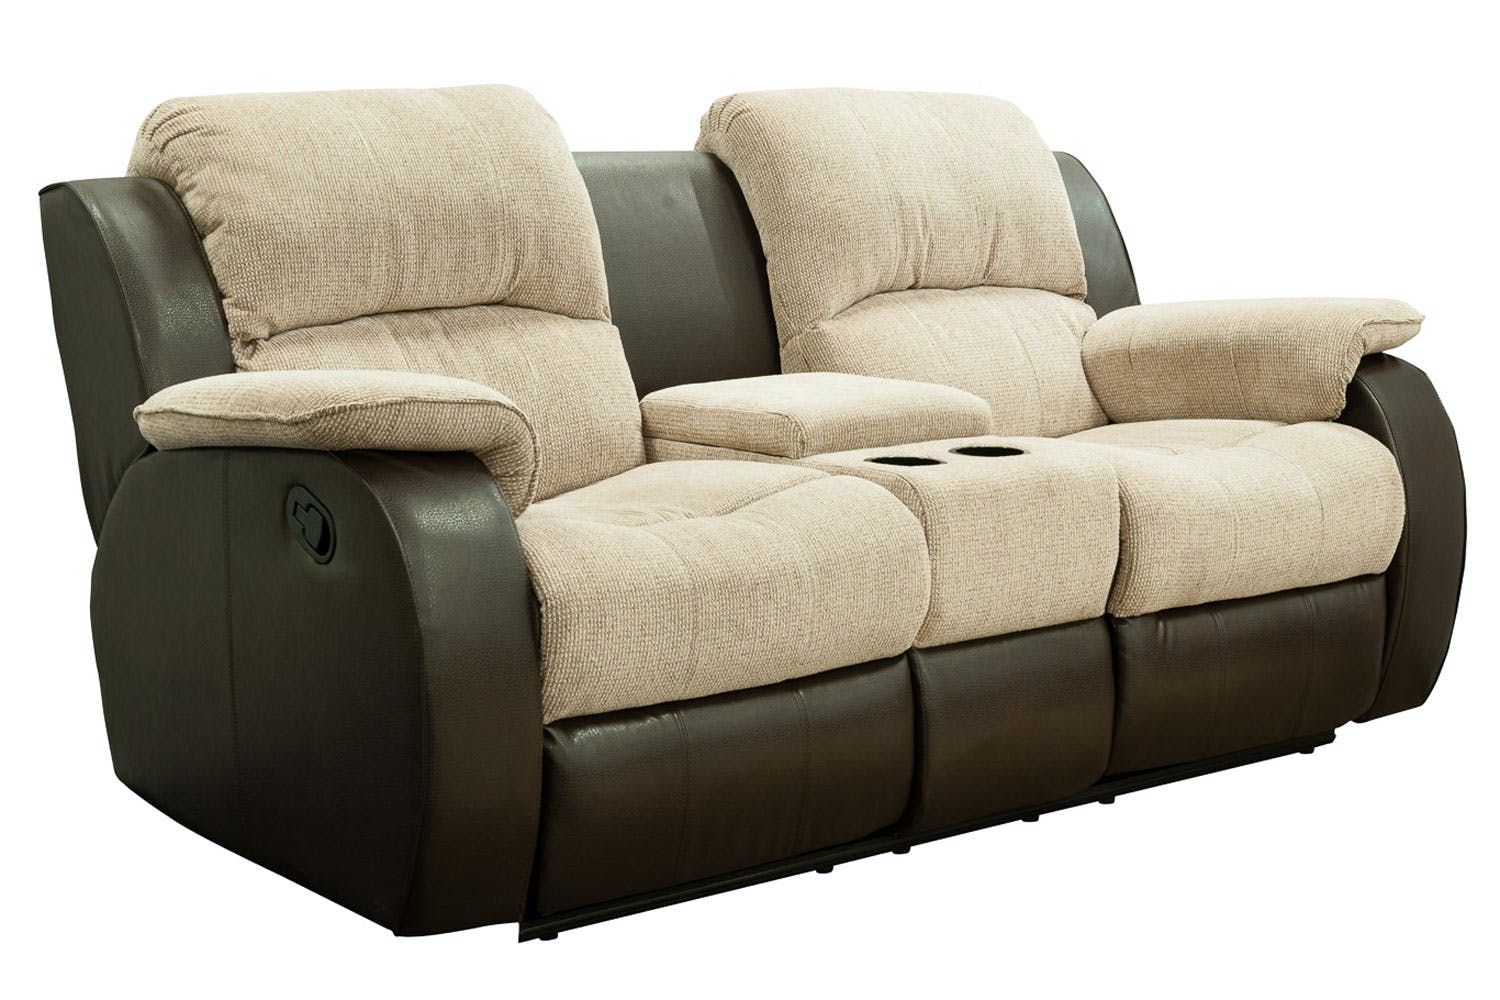 Recliner Sofa With Console Burgundy Leather Reclining Sofa With Console And Nailhead Trim Thesofa